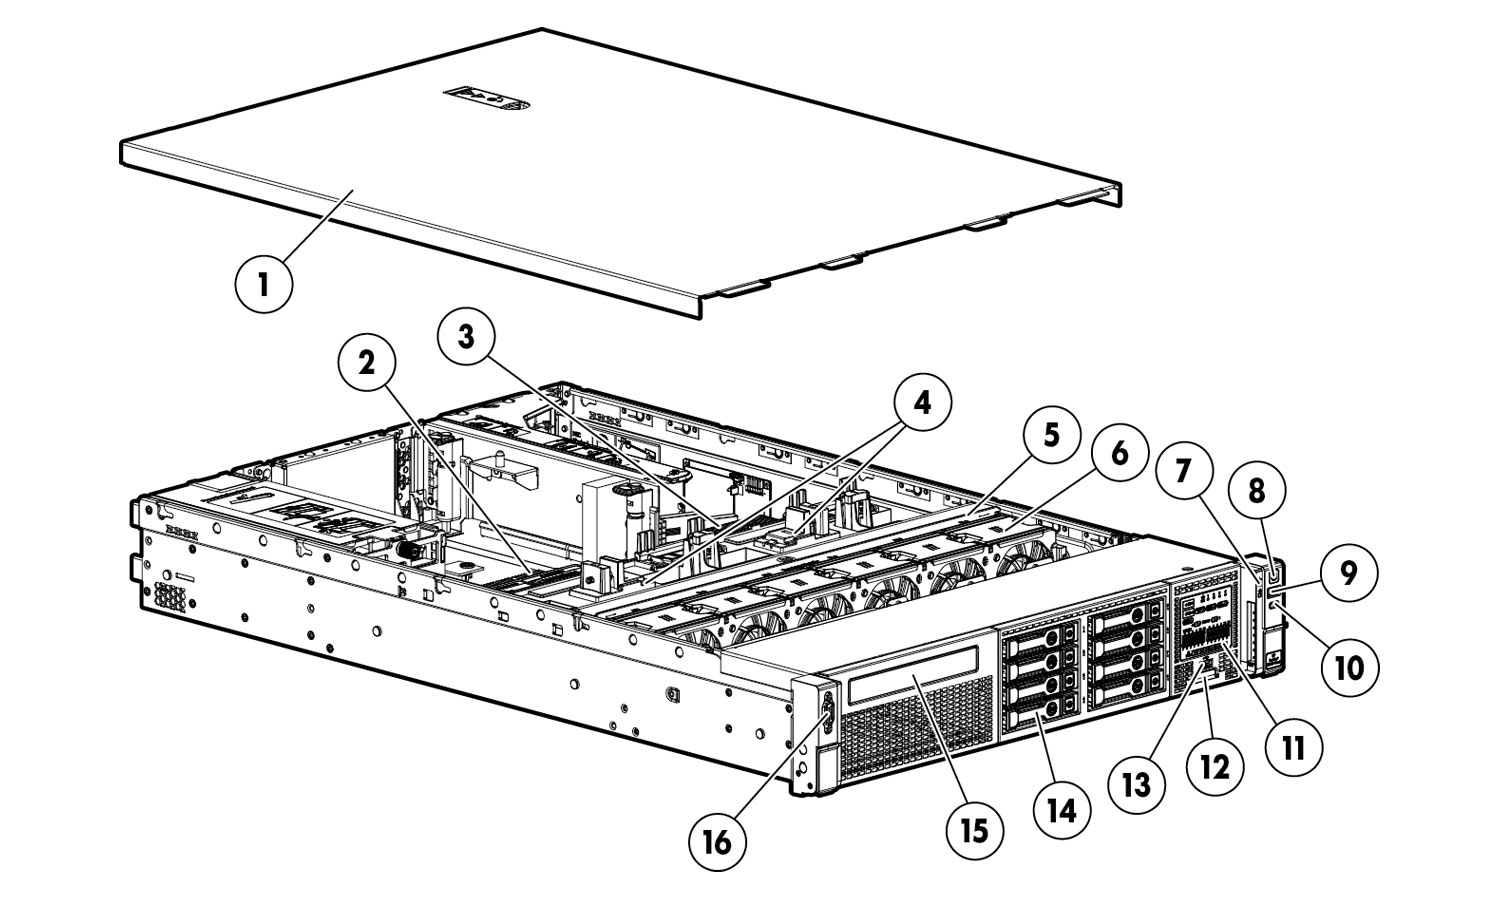 hp g6 diagram